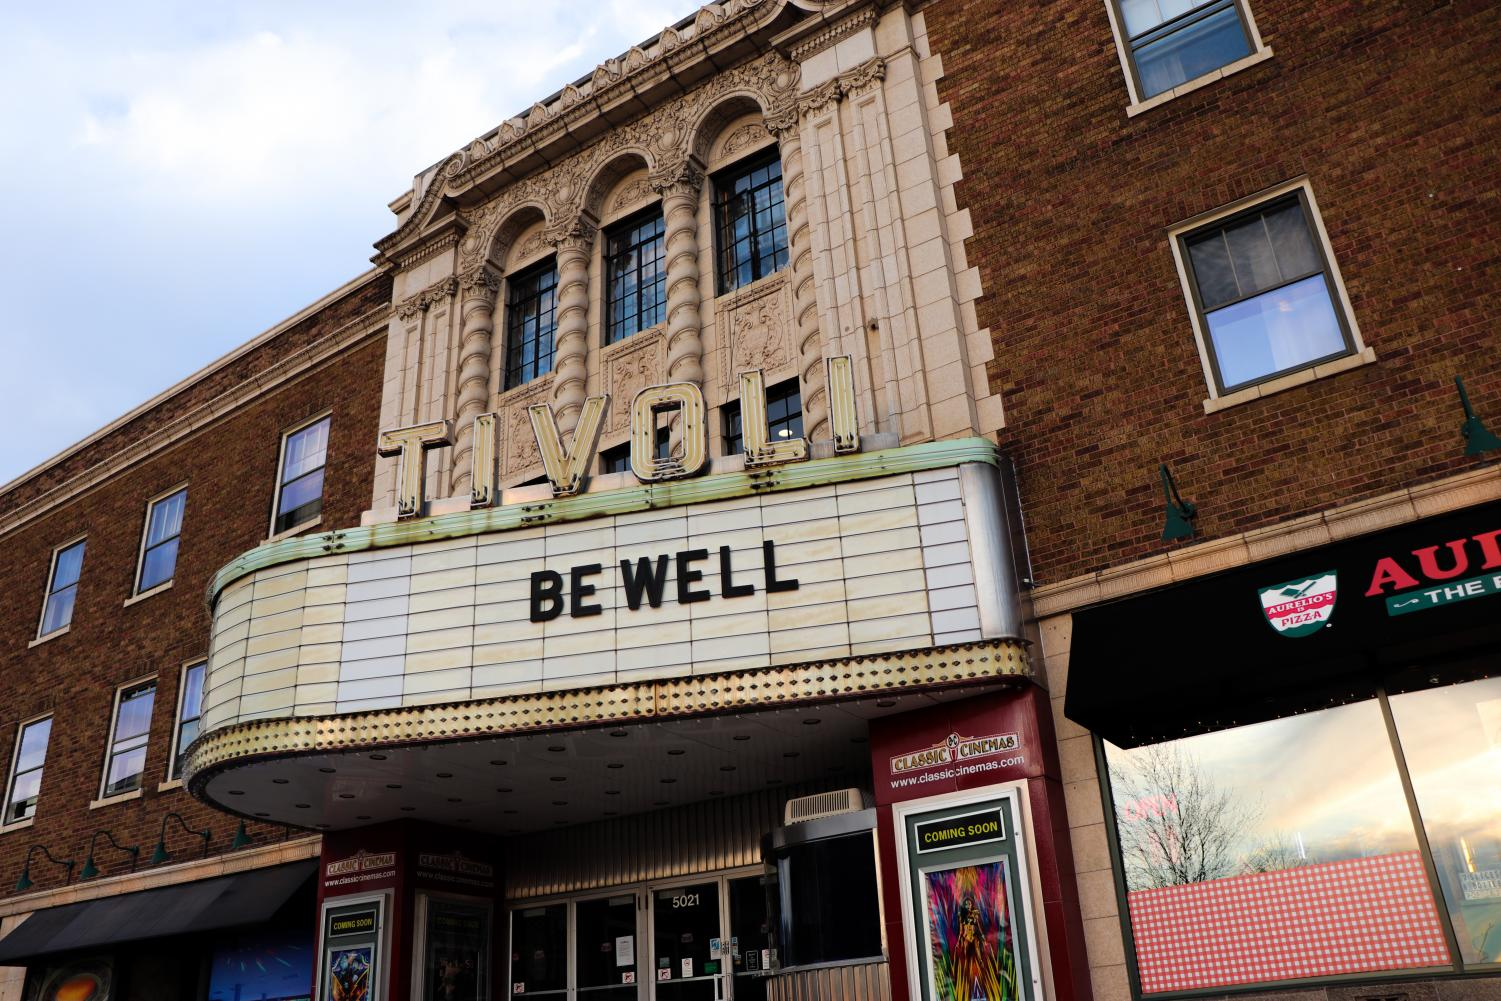 Constructed+in+1928%2C+the+Tivoli+Theatre+in+downtown+Downers+Grove+is+a+community+landmark+and+signature+attraction+among+residents.+The+current+facade+of+the+theatre+is+a+stark+contrast+to+its+typical+lively+marquee+displaying+nightly+movie+titles.+Now+desolate+and+lifeless%2C+the+Tivoli+presents+a+singular+message%3A+be+well.